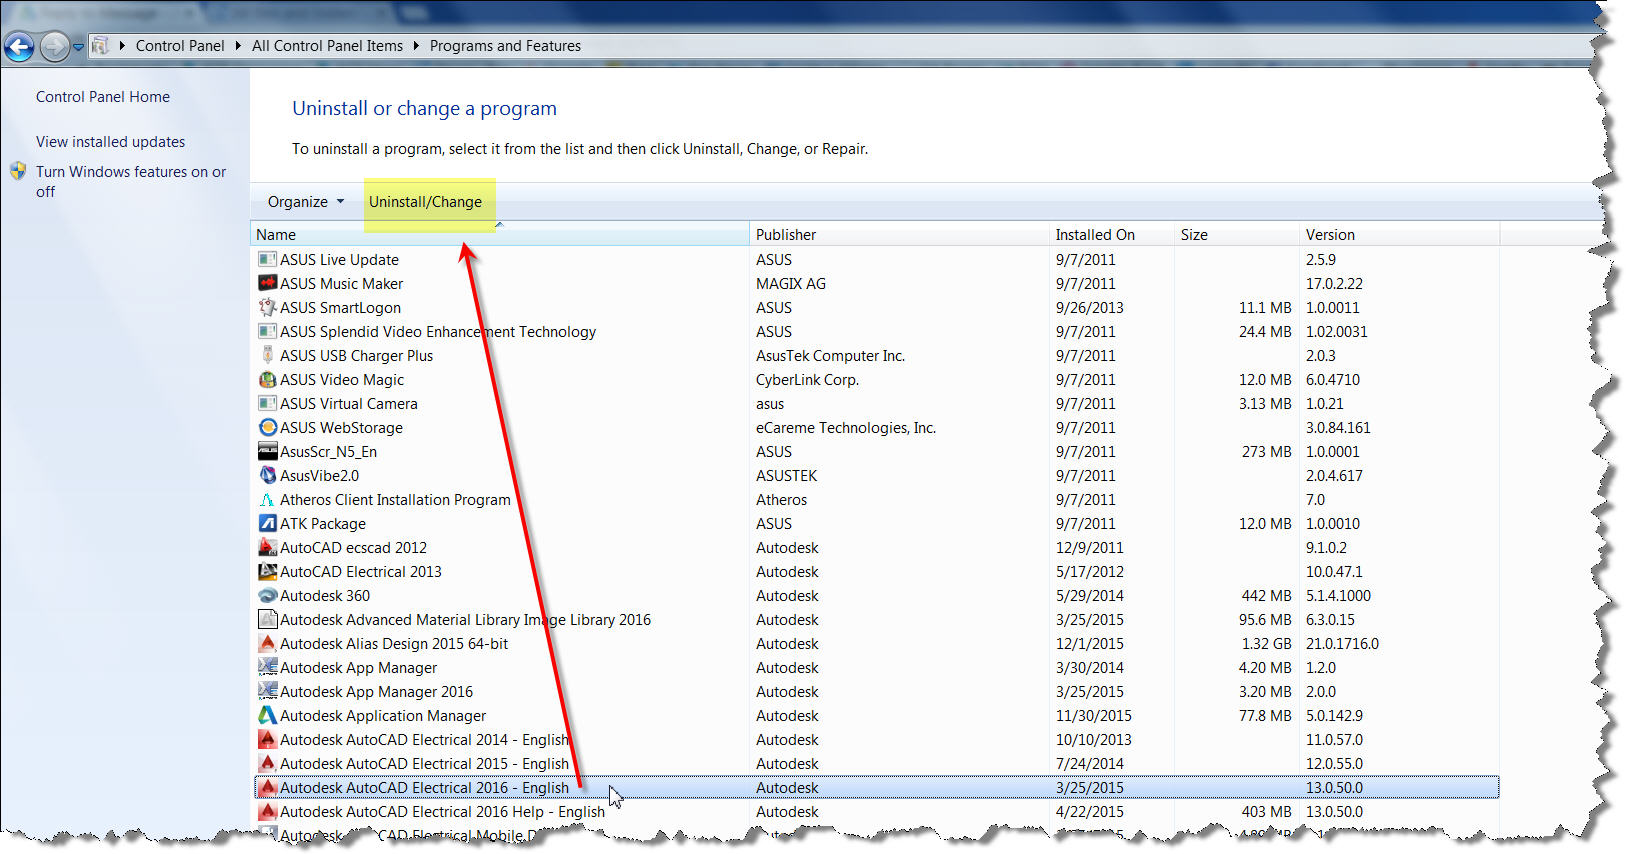 Solved: 2015 catalog browser - Page 2 - Autodesk Community